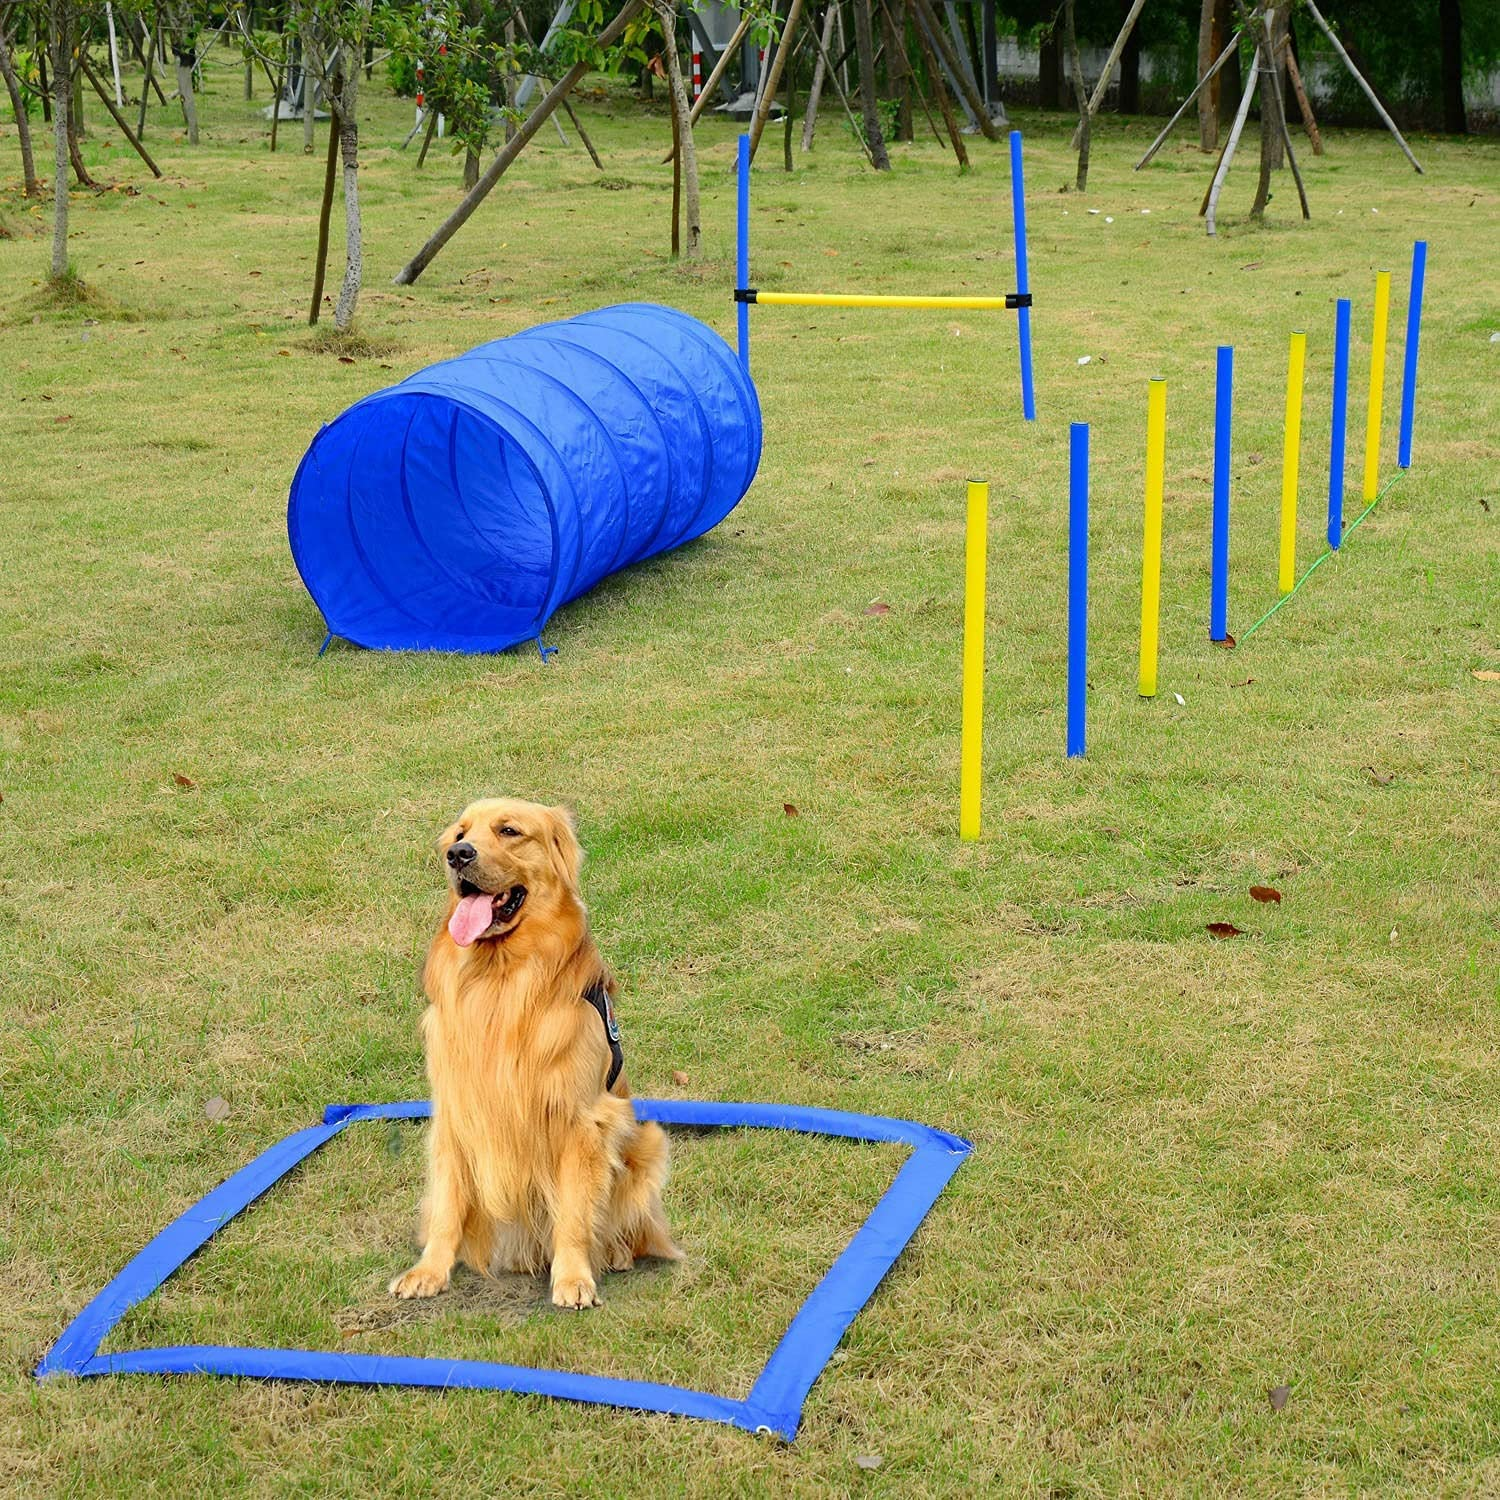 Kosoree Backyard Dog High quality new Agility Max 58% OFF Training Obstacle Equipm Kit Course